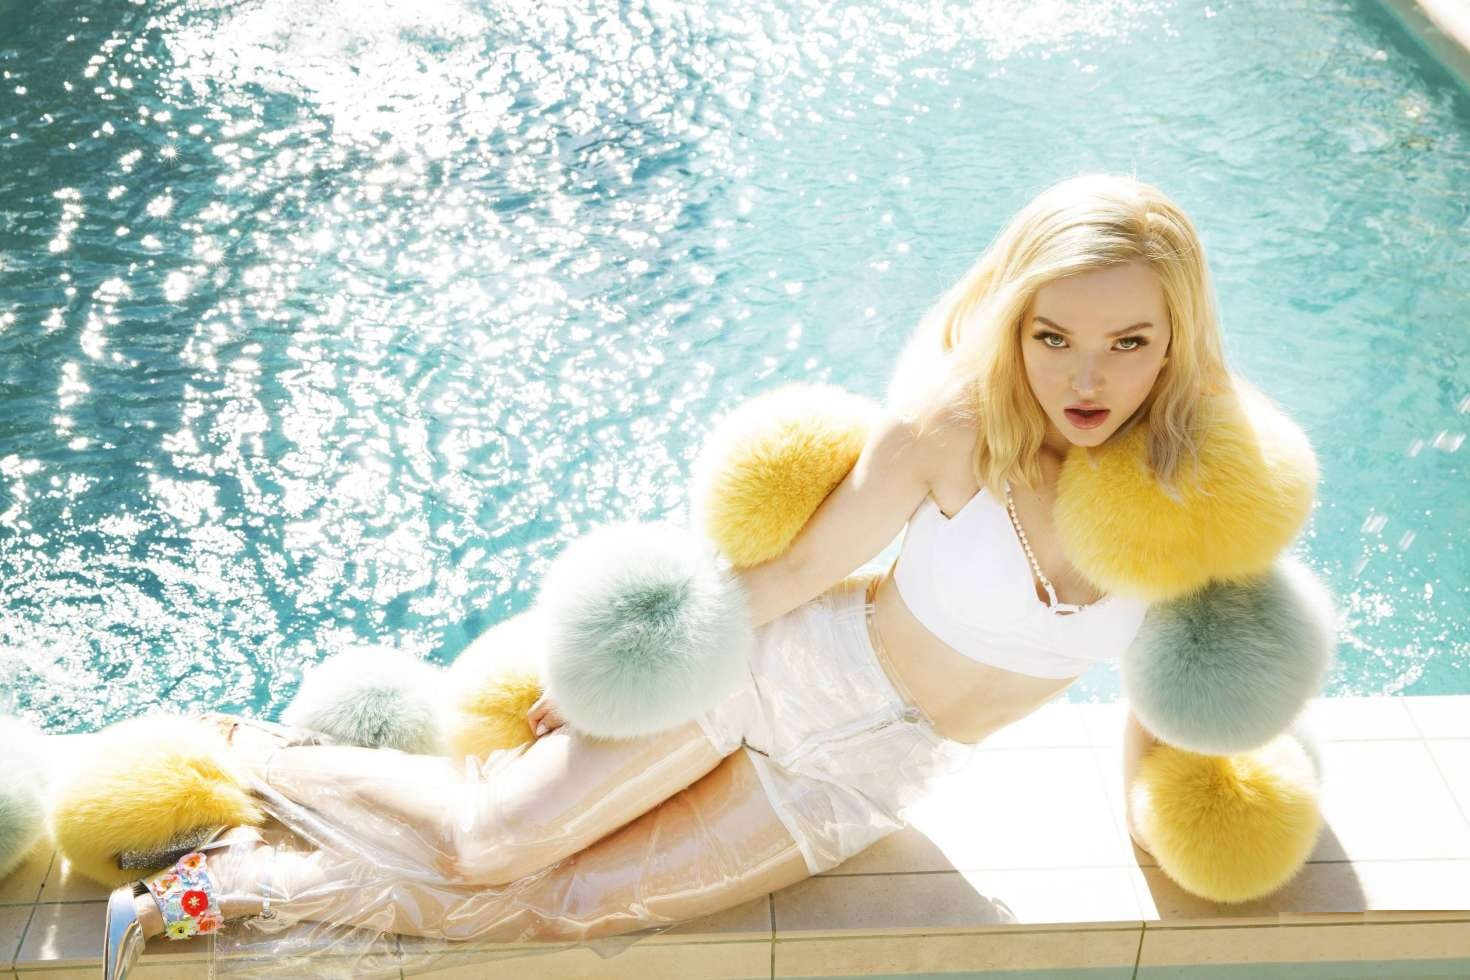 Dove Cameron Bikini Pose By The Pool - Dove Cameron Net Worth, Pics, Wallpapers, Career and Biography